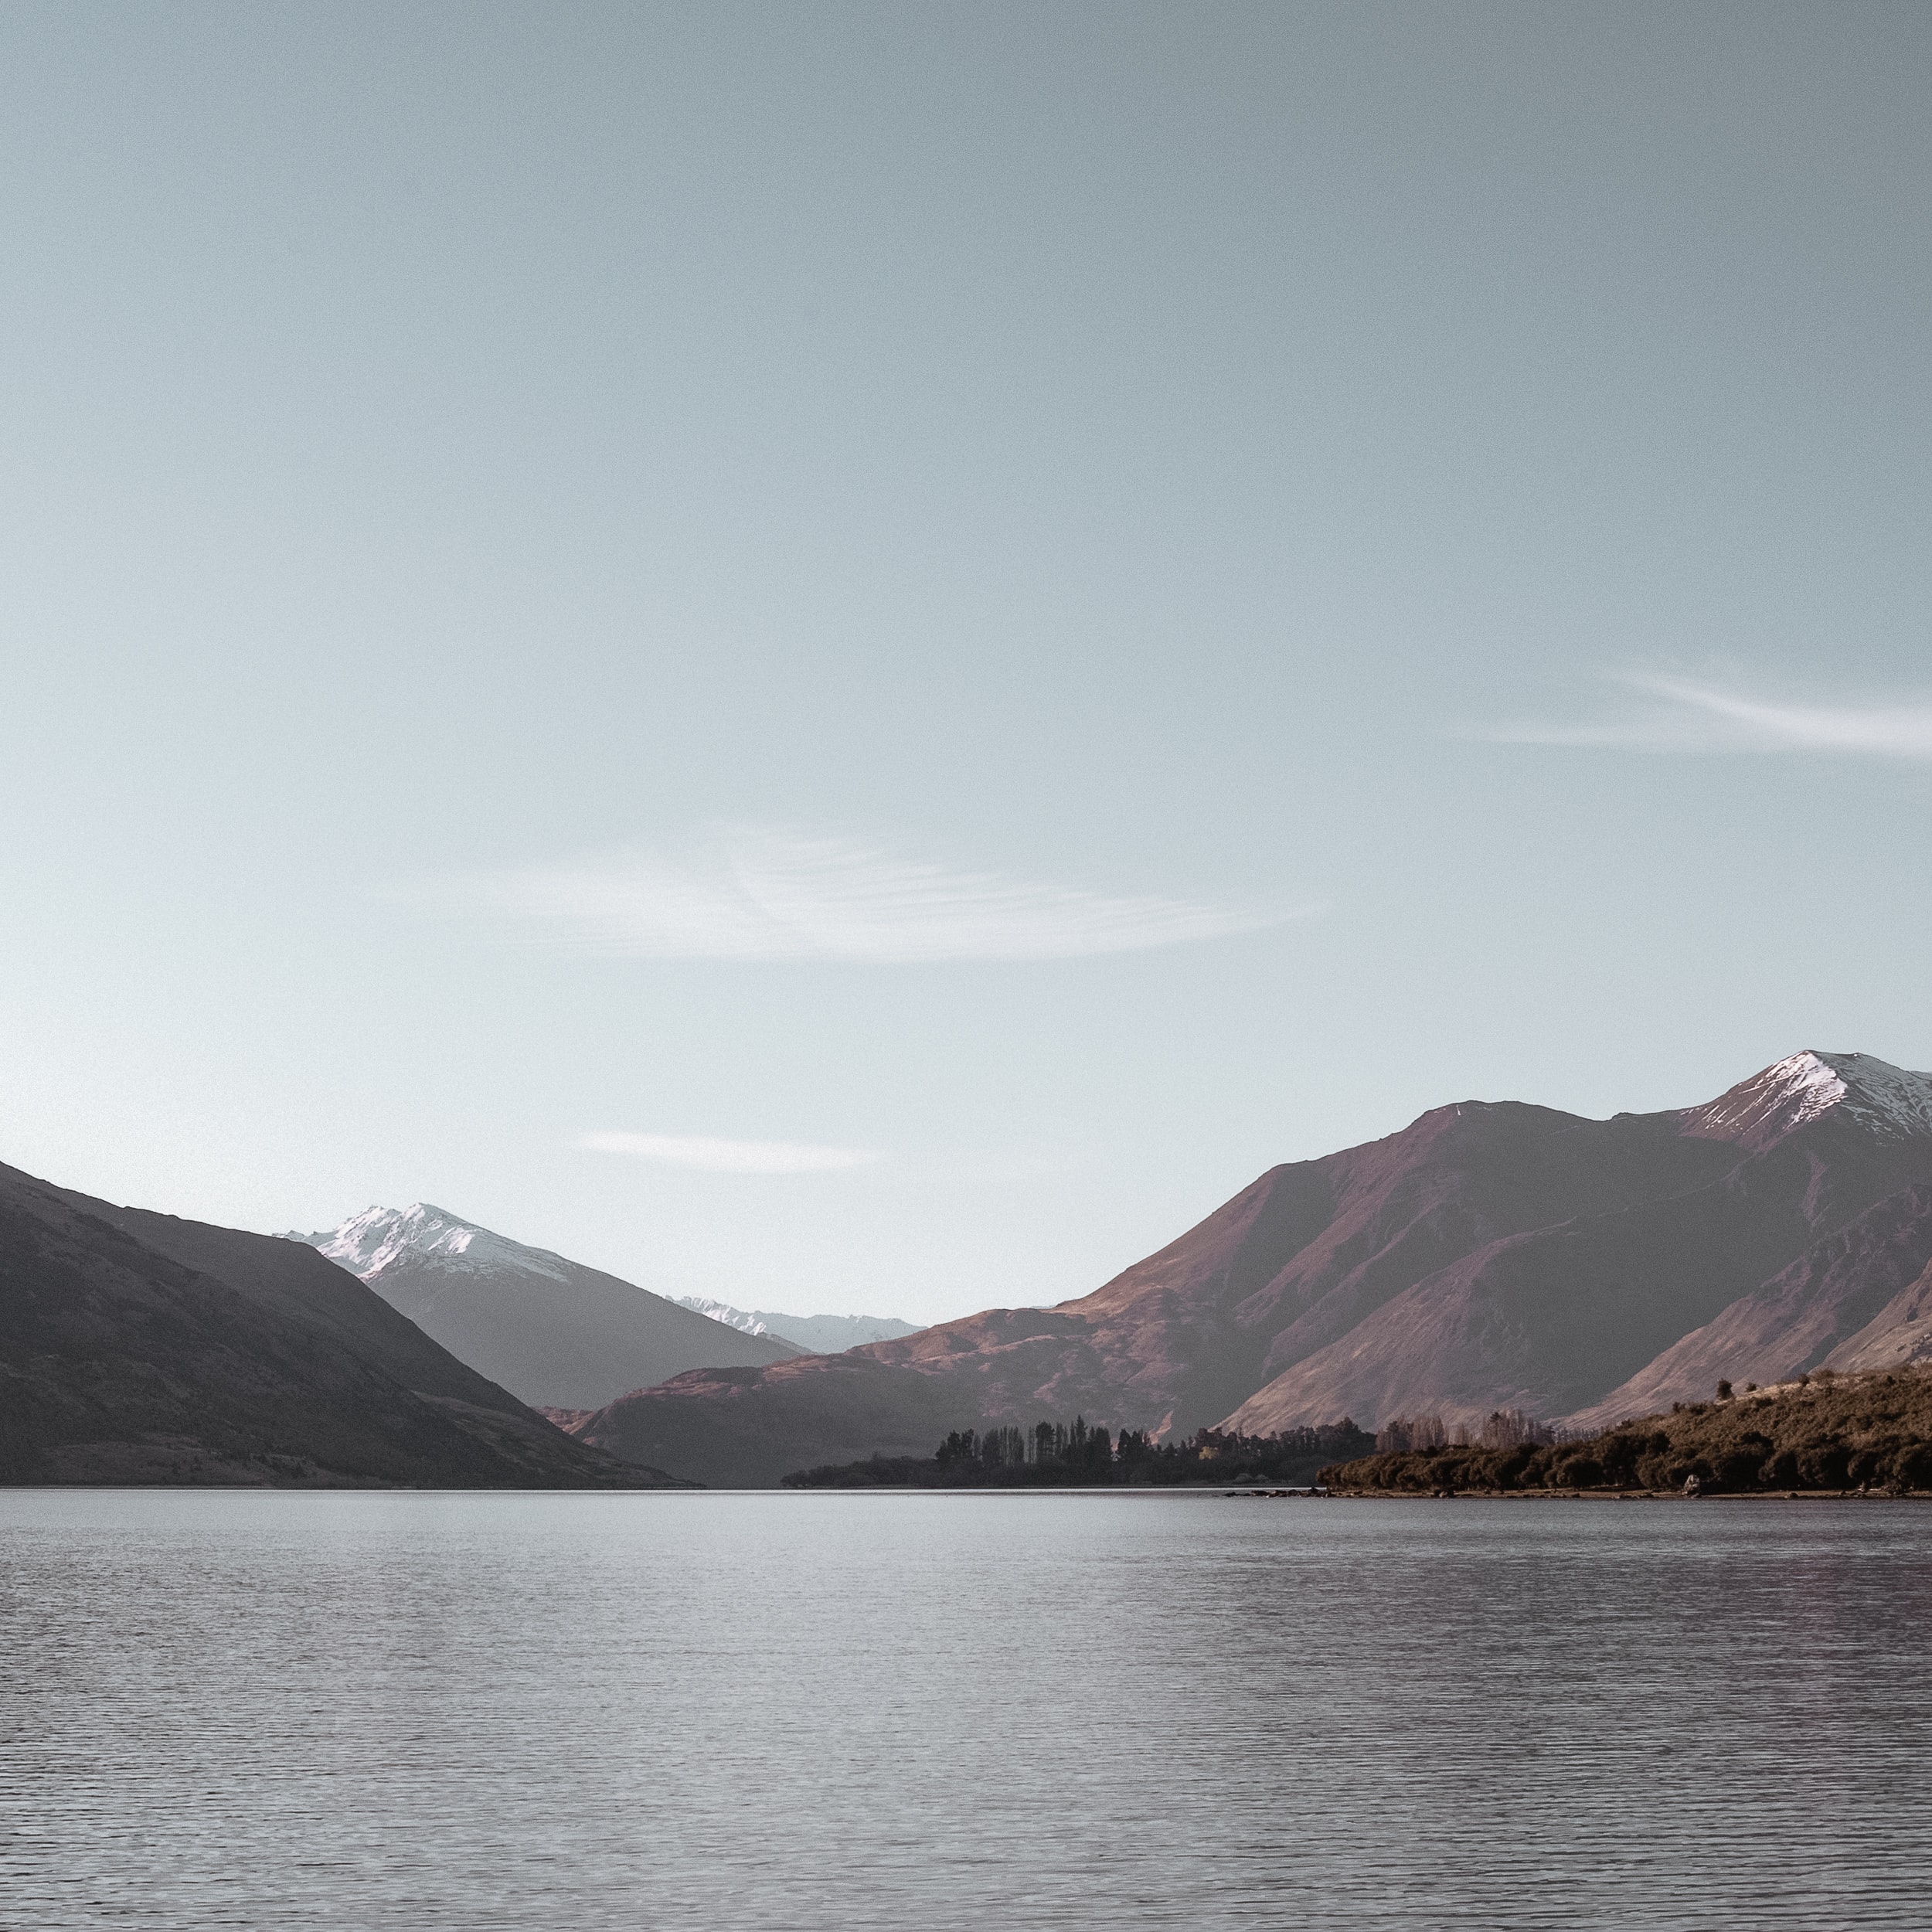 landscape photography of body of water with mountains